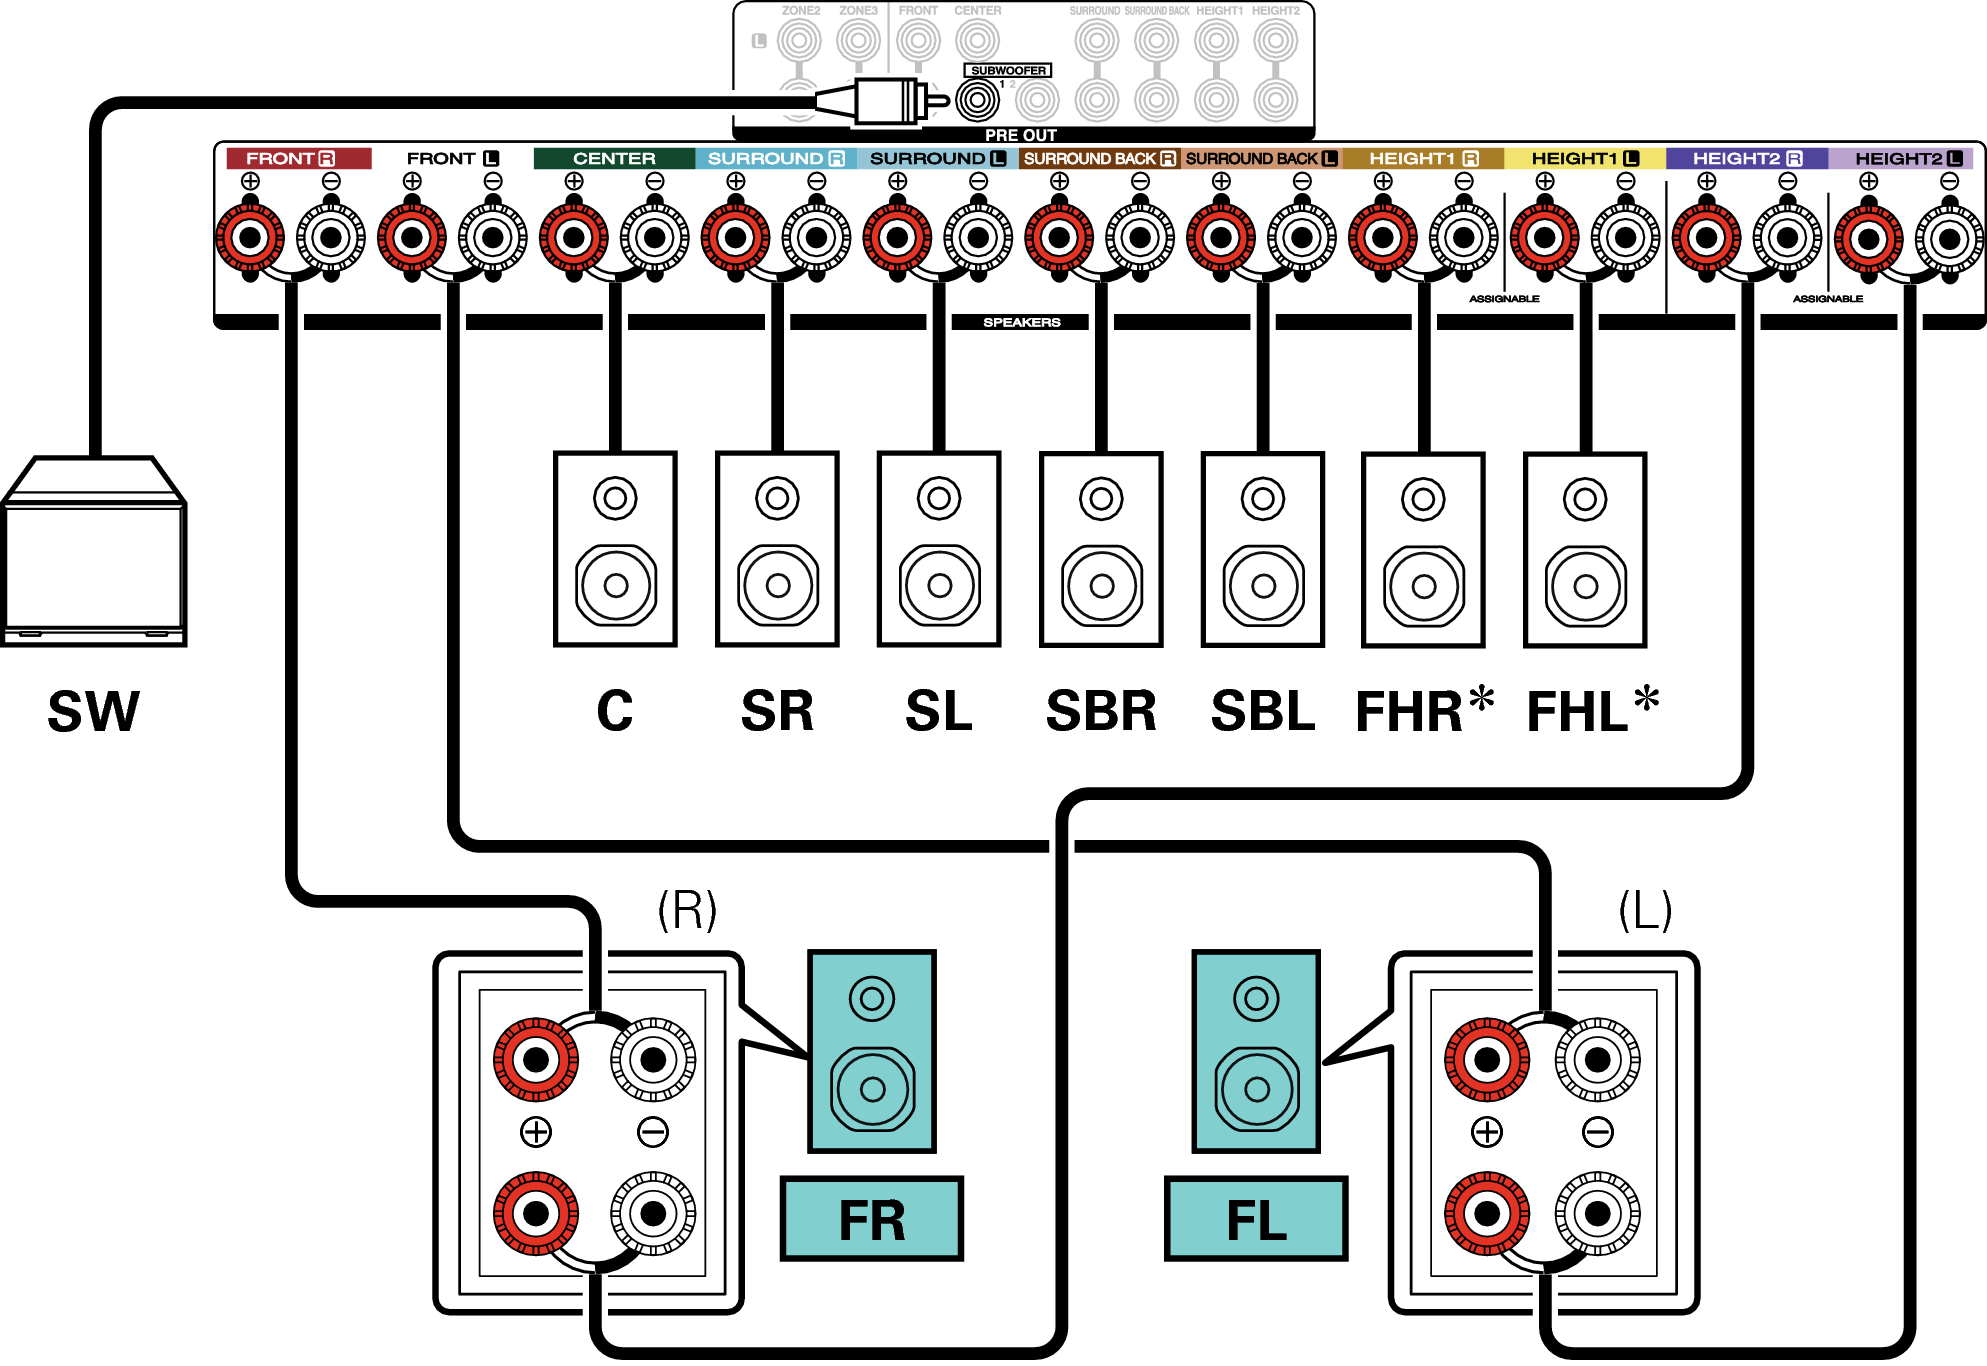 [DIAGRAM_3ER]  Connecting 7.1-channel speakers: Bi-amp connection of front speakers  AVR-X4500H | Bi Amp Wiring Diagram Denon |  | manuals.denon.com